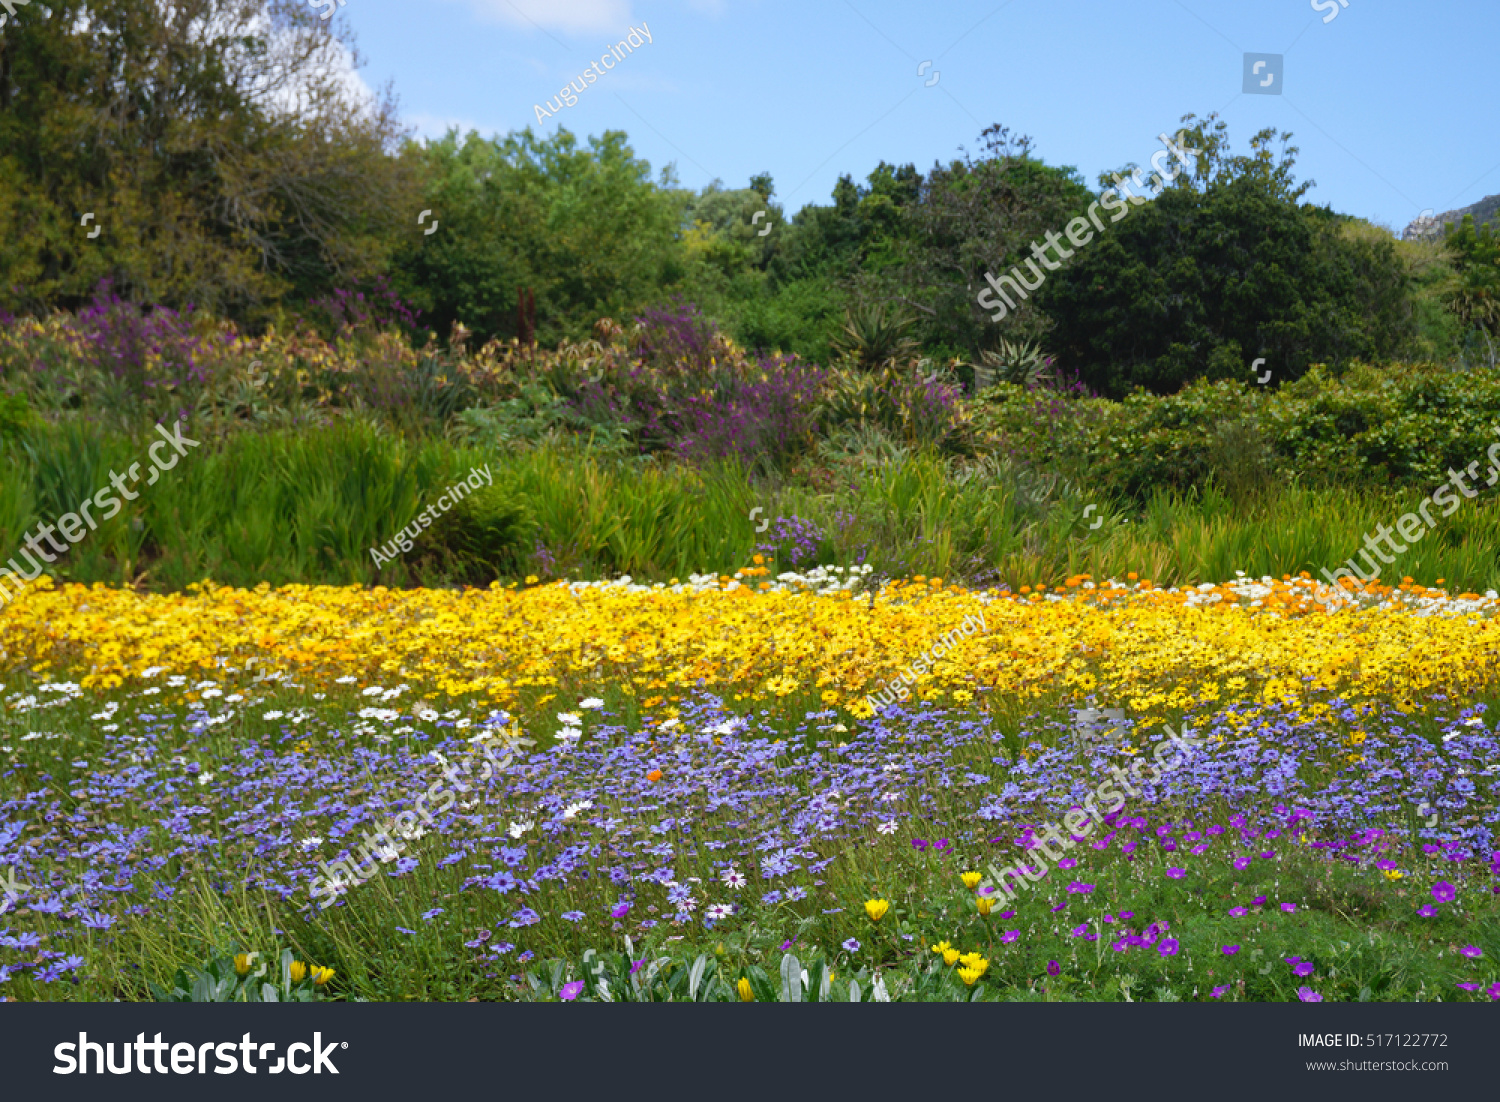 Beautiful purple yellow flower bed landscape stockfoto for Green plants for flower beds